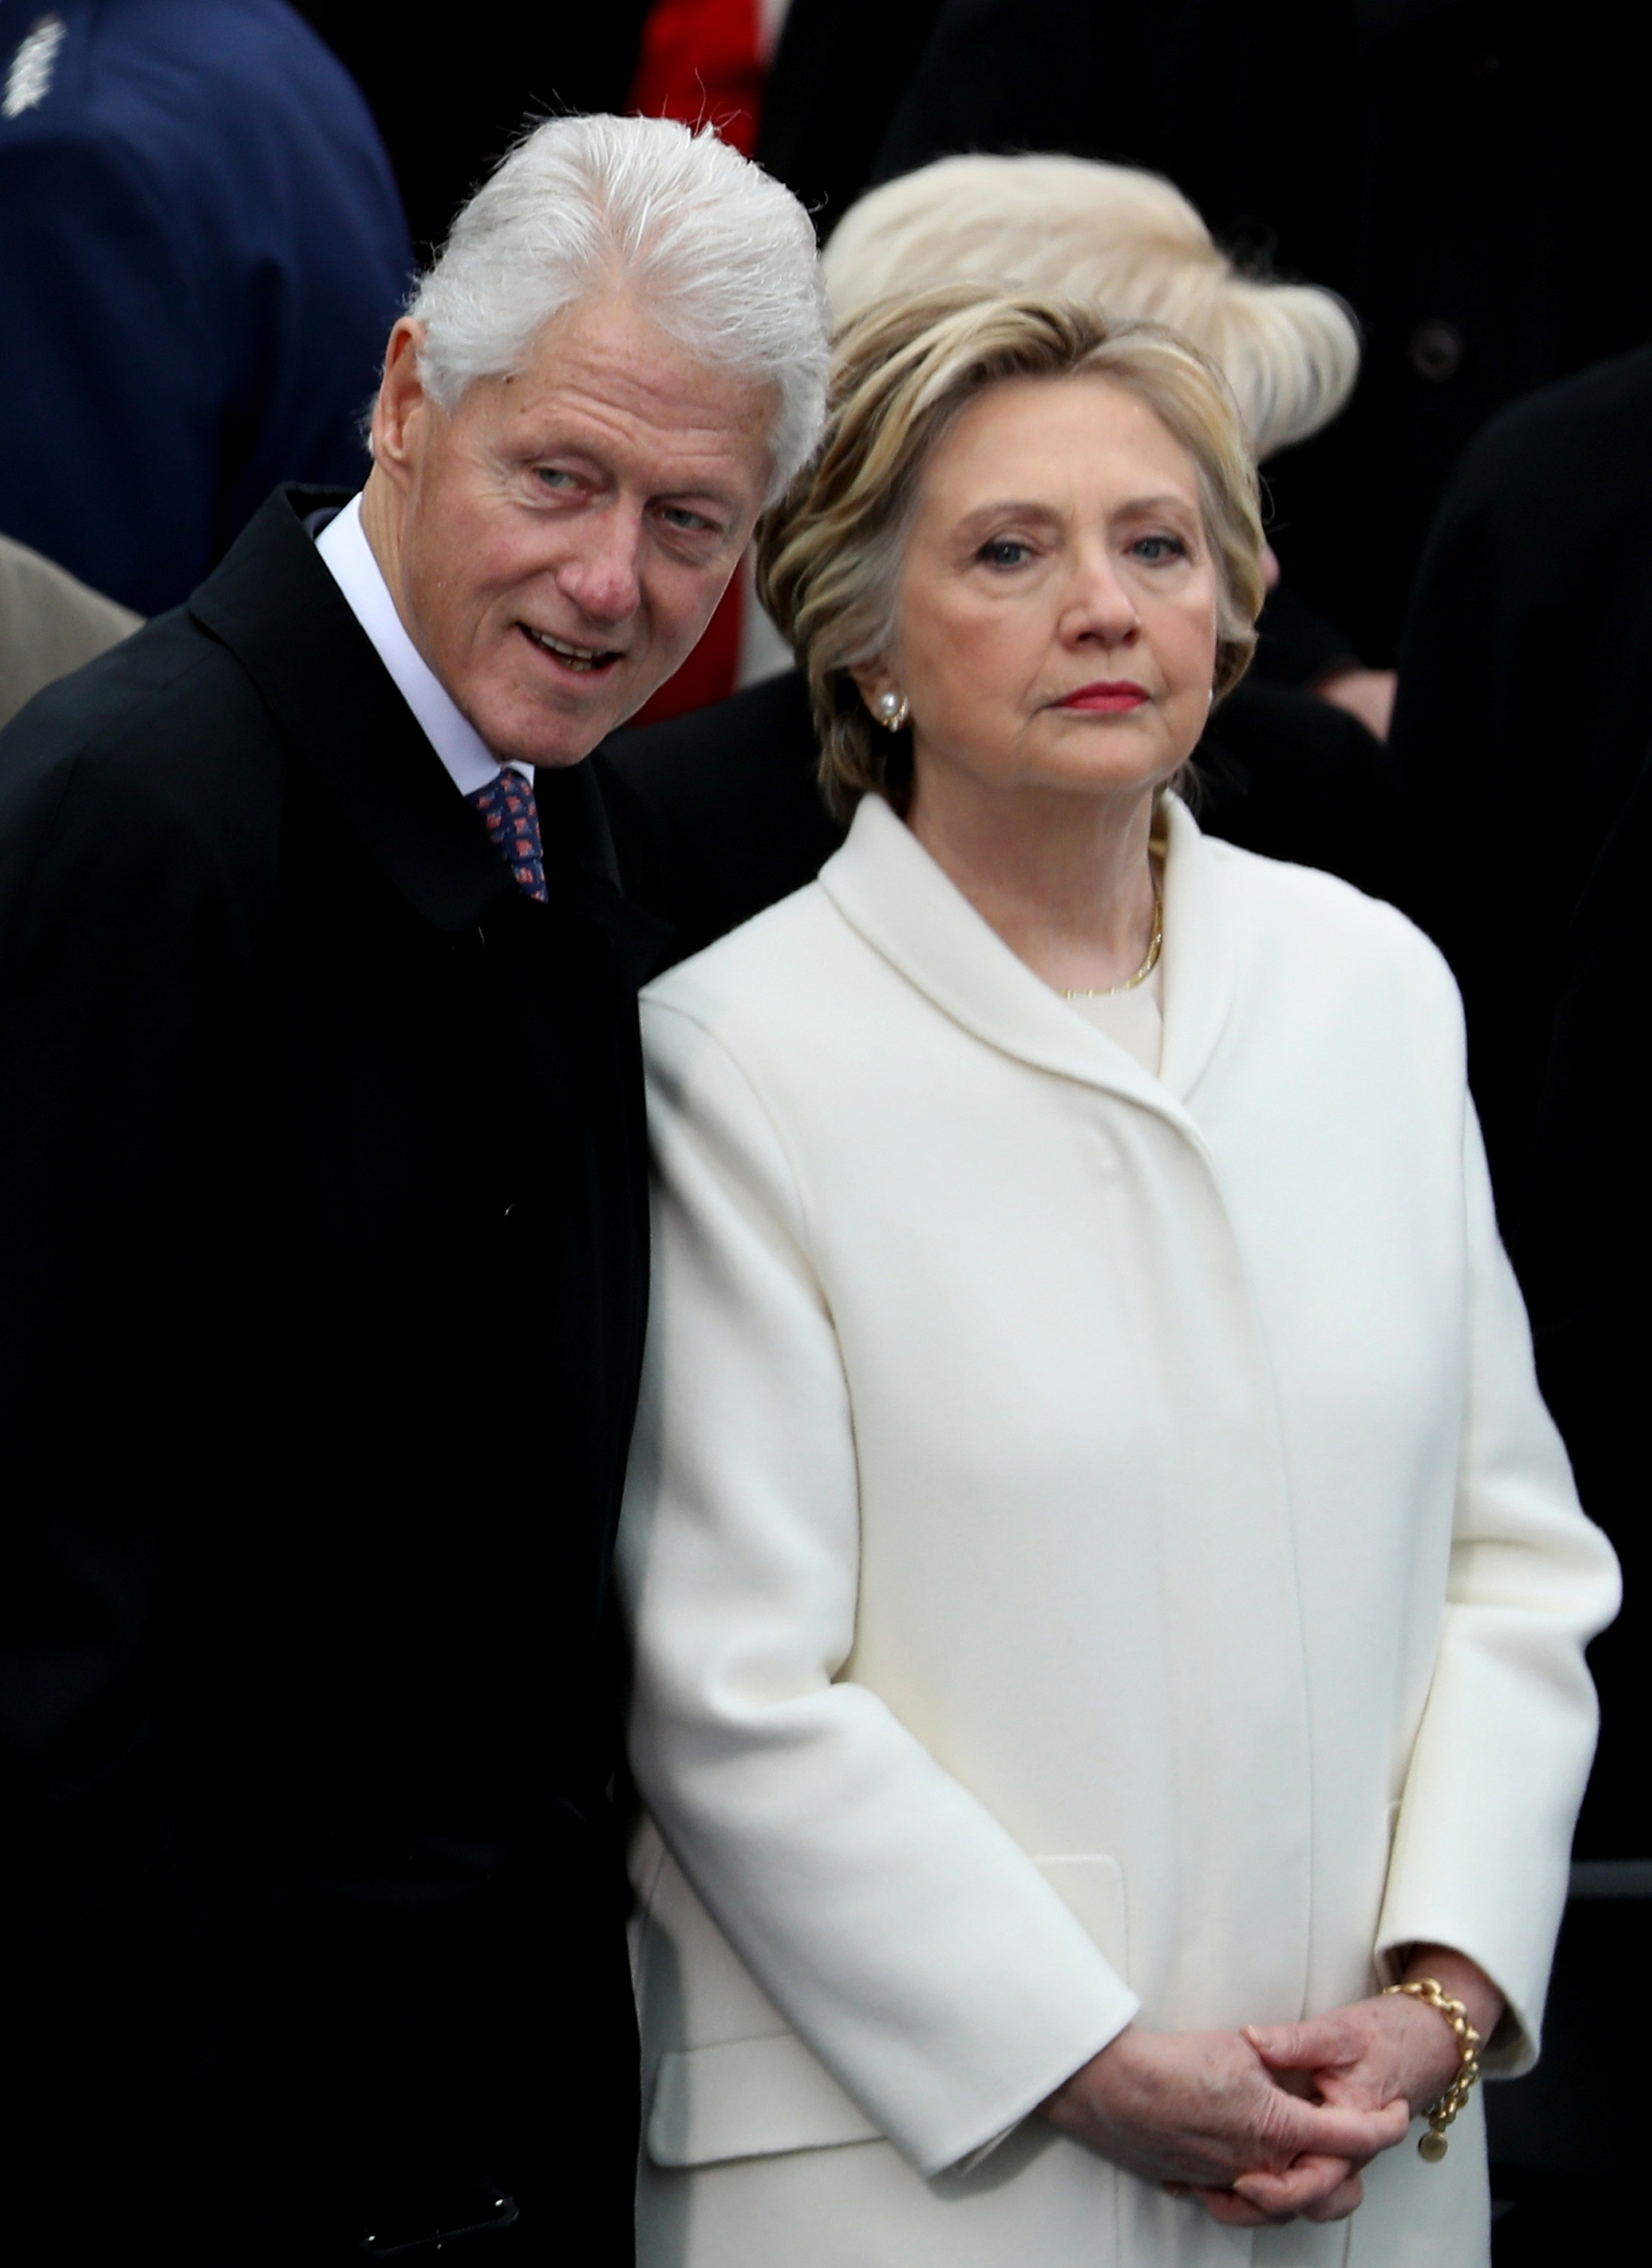 WASHINGTON, DC - JANUARY 20: Former President Bill Clinton and former Democratic presidential nominee Hillary Clinton stand on the West Front of the U.S. Capitol on January 20, 2017 in Washington, DC. In today's inauguration ceremony Donald J. Trump becomes the 45th president of the United States.   Joe Raedle/Getty Images/AFP